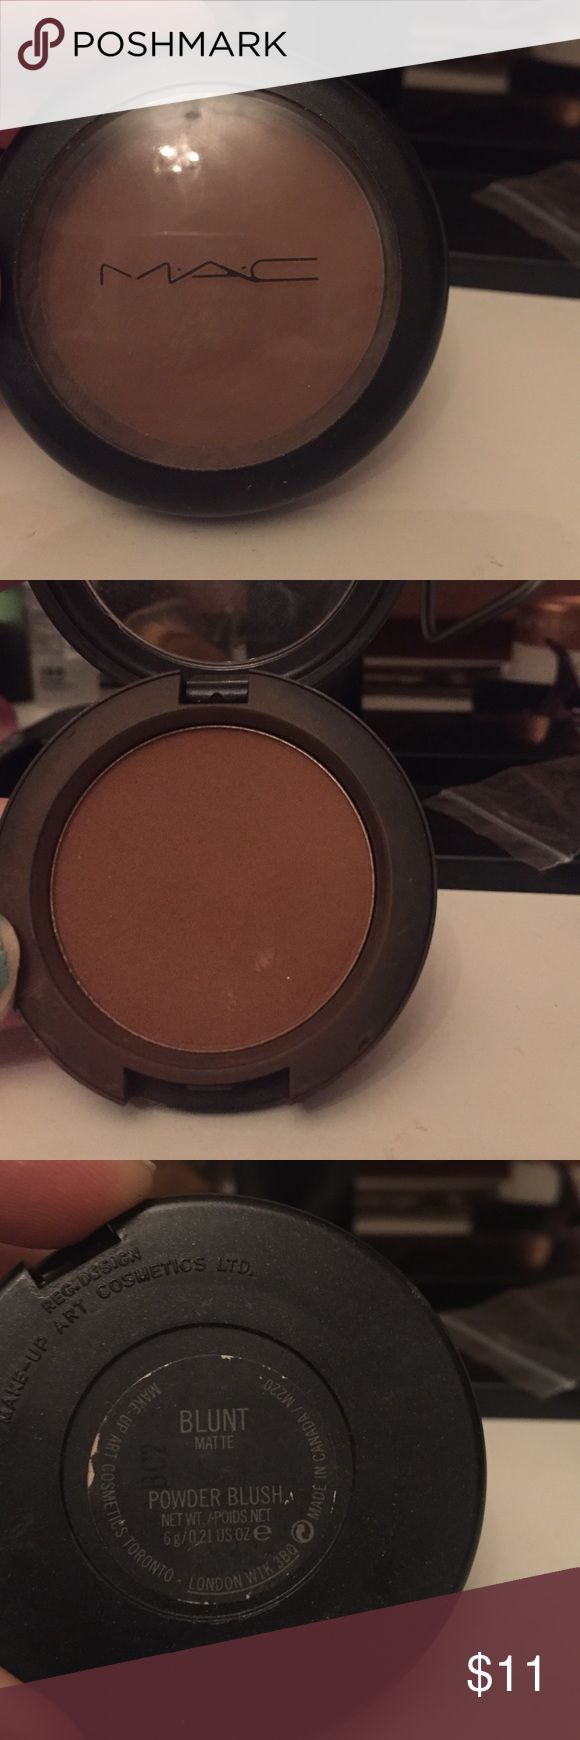 MAC Bronzer Matte Bronzer from MAC in color Blunt. I've only used it maybe 3 times still plenty in there. MAC Cosmetics Makeup Bronzer